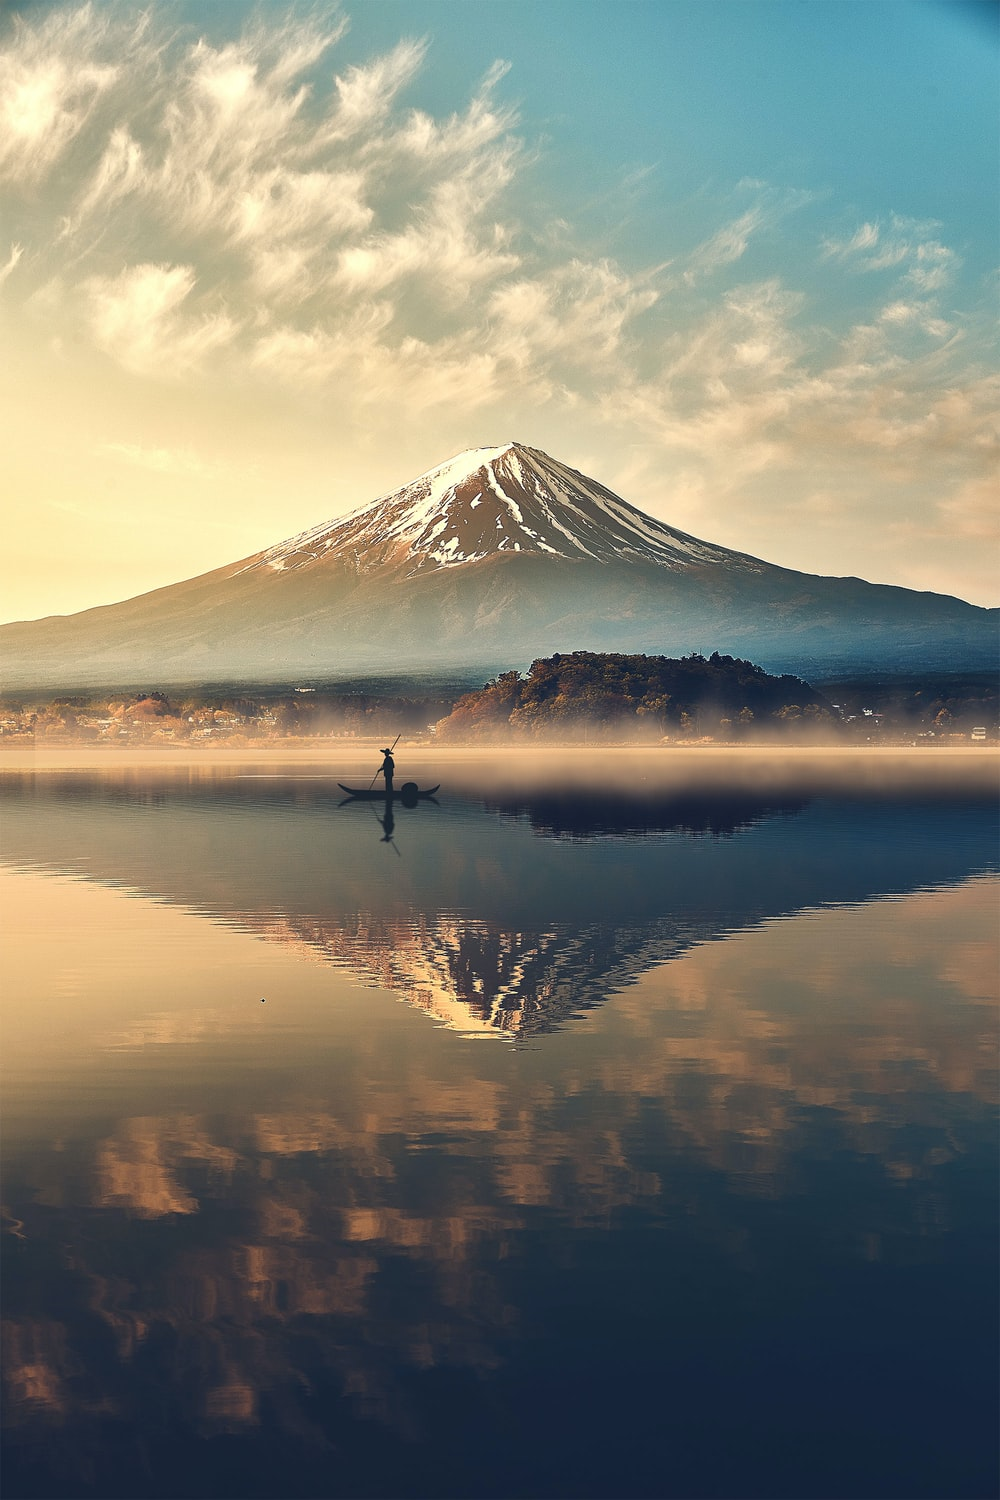 reflection of mountain on body of water